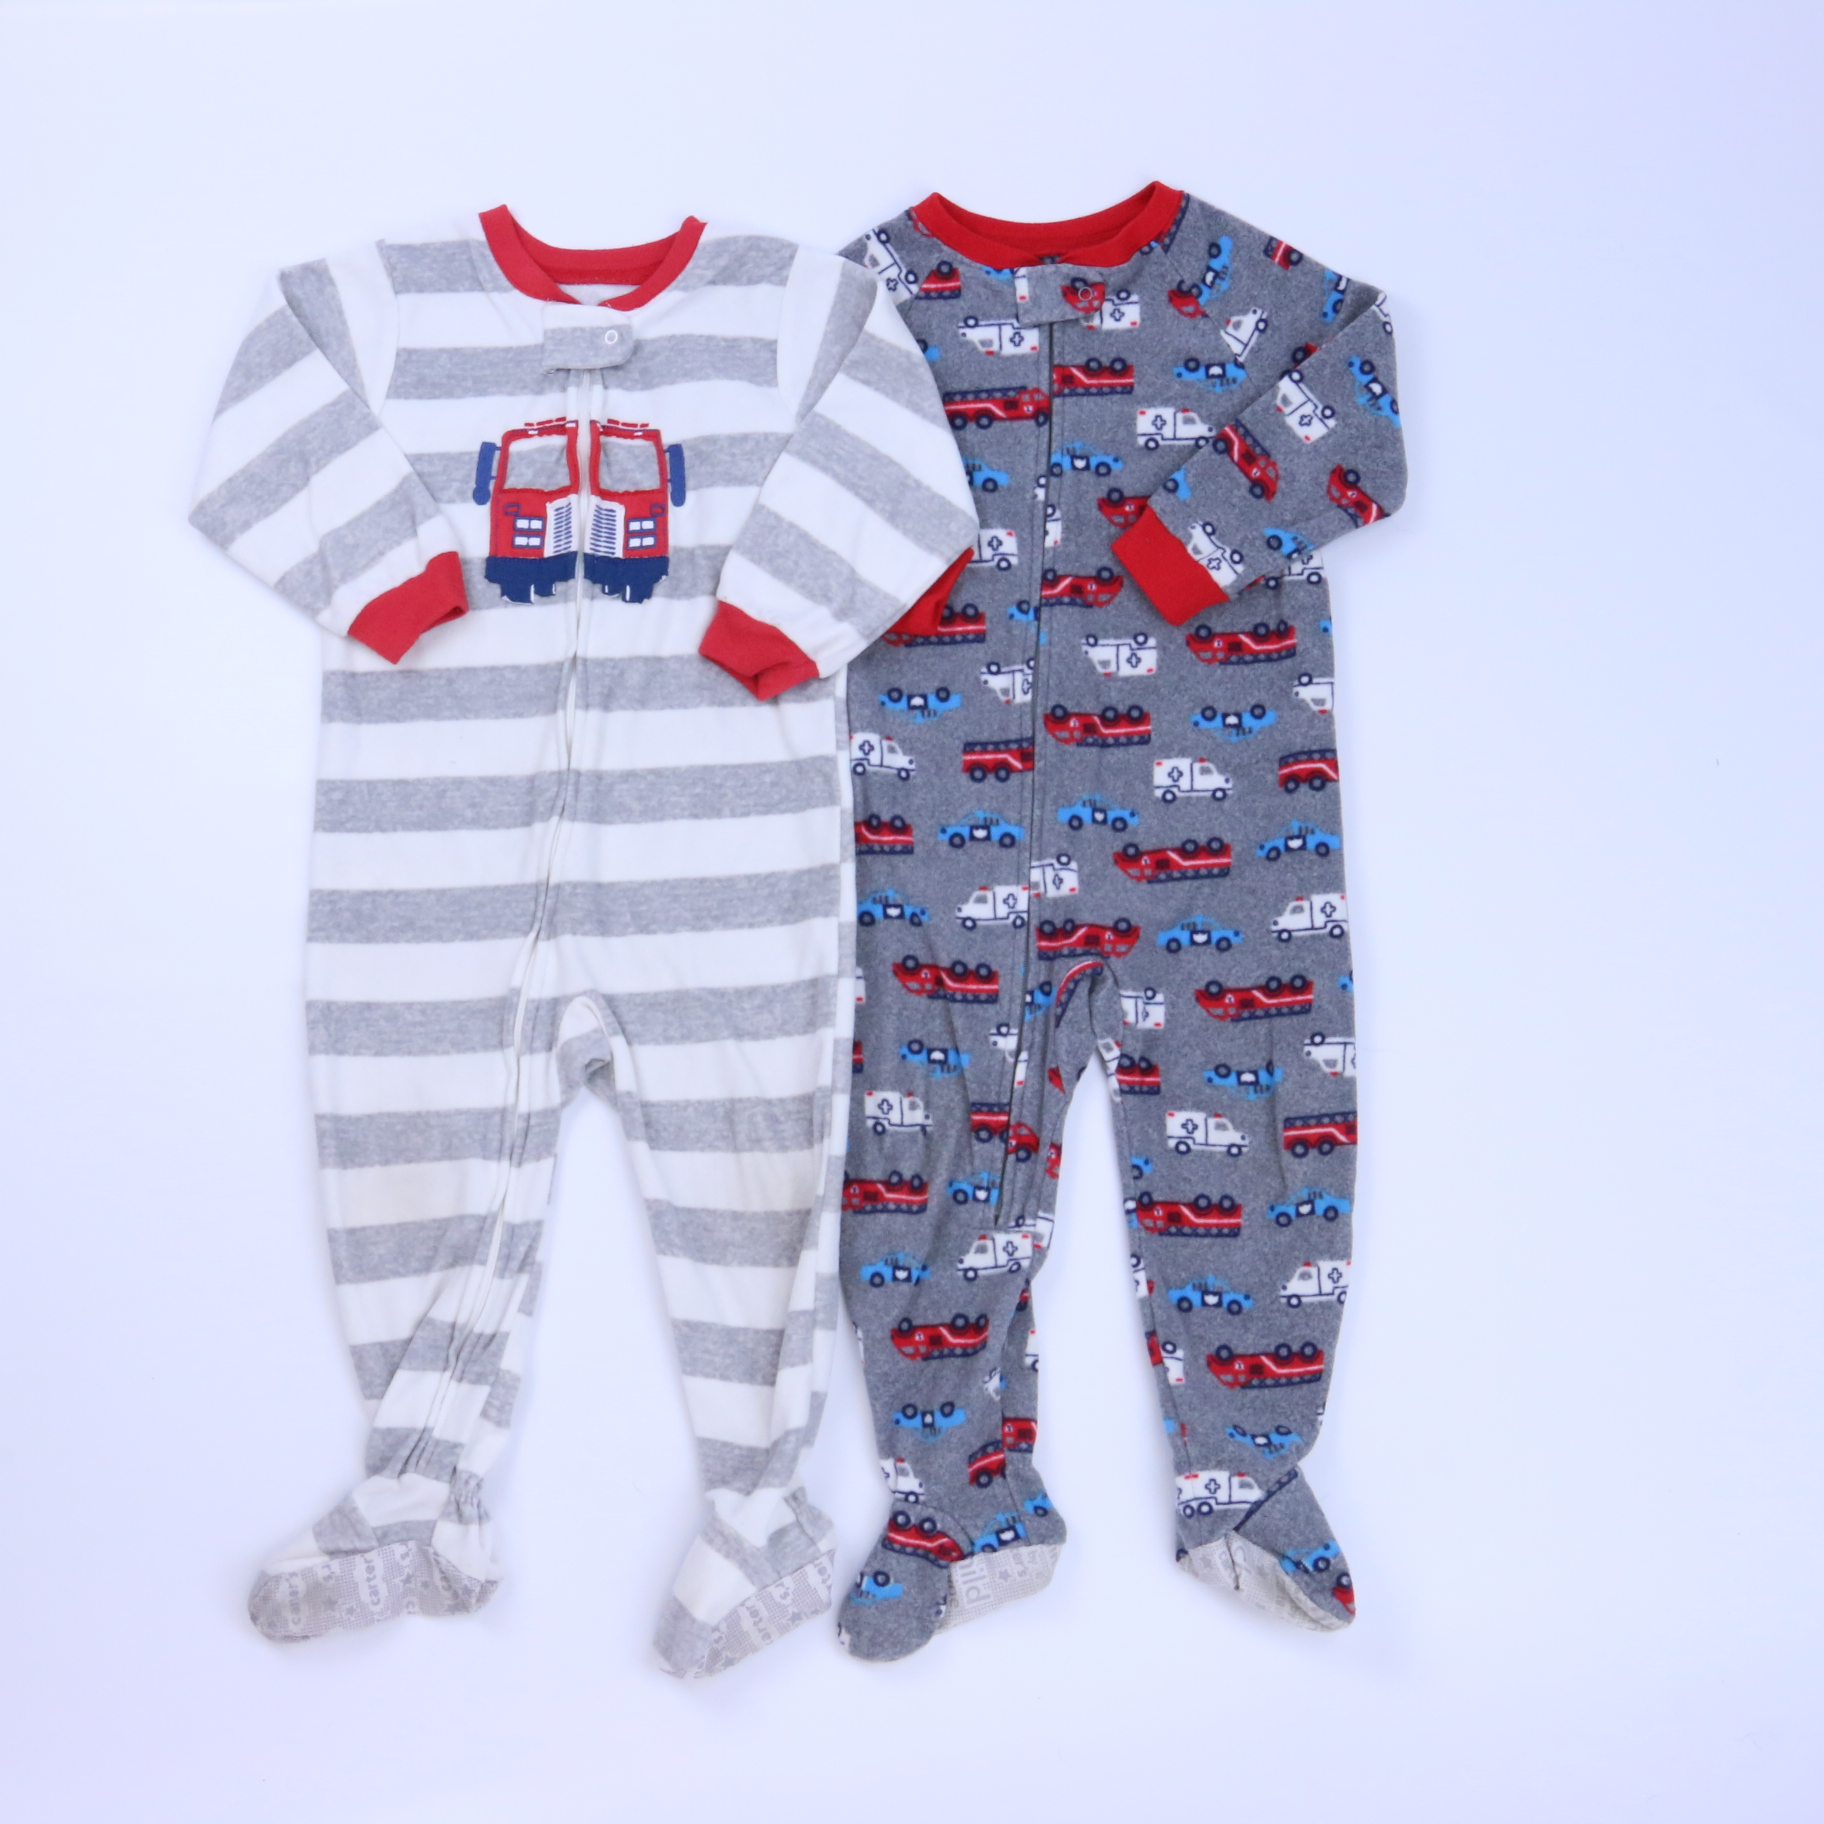 5bf3a85146d7 Set of 2 1-piece footed Pajamas size  2T - The Swoondle Society